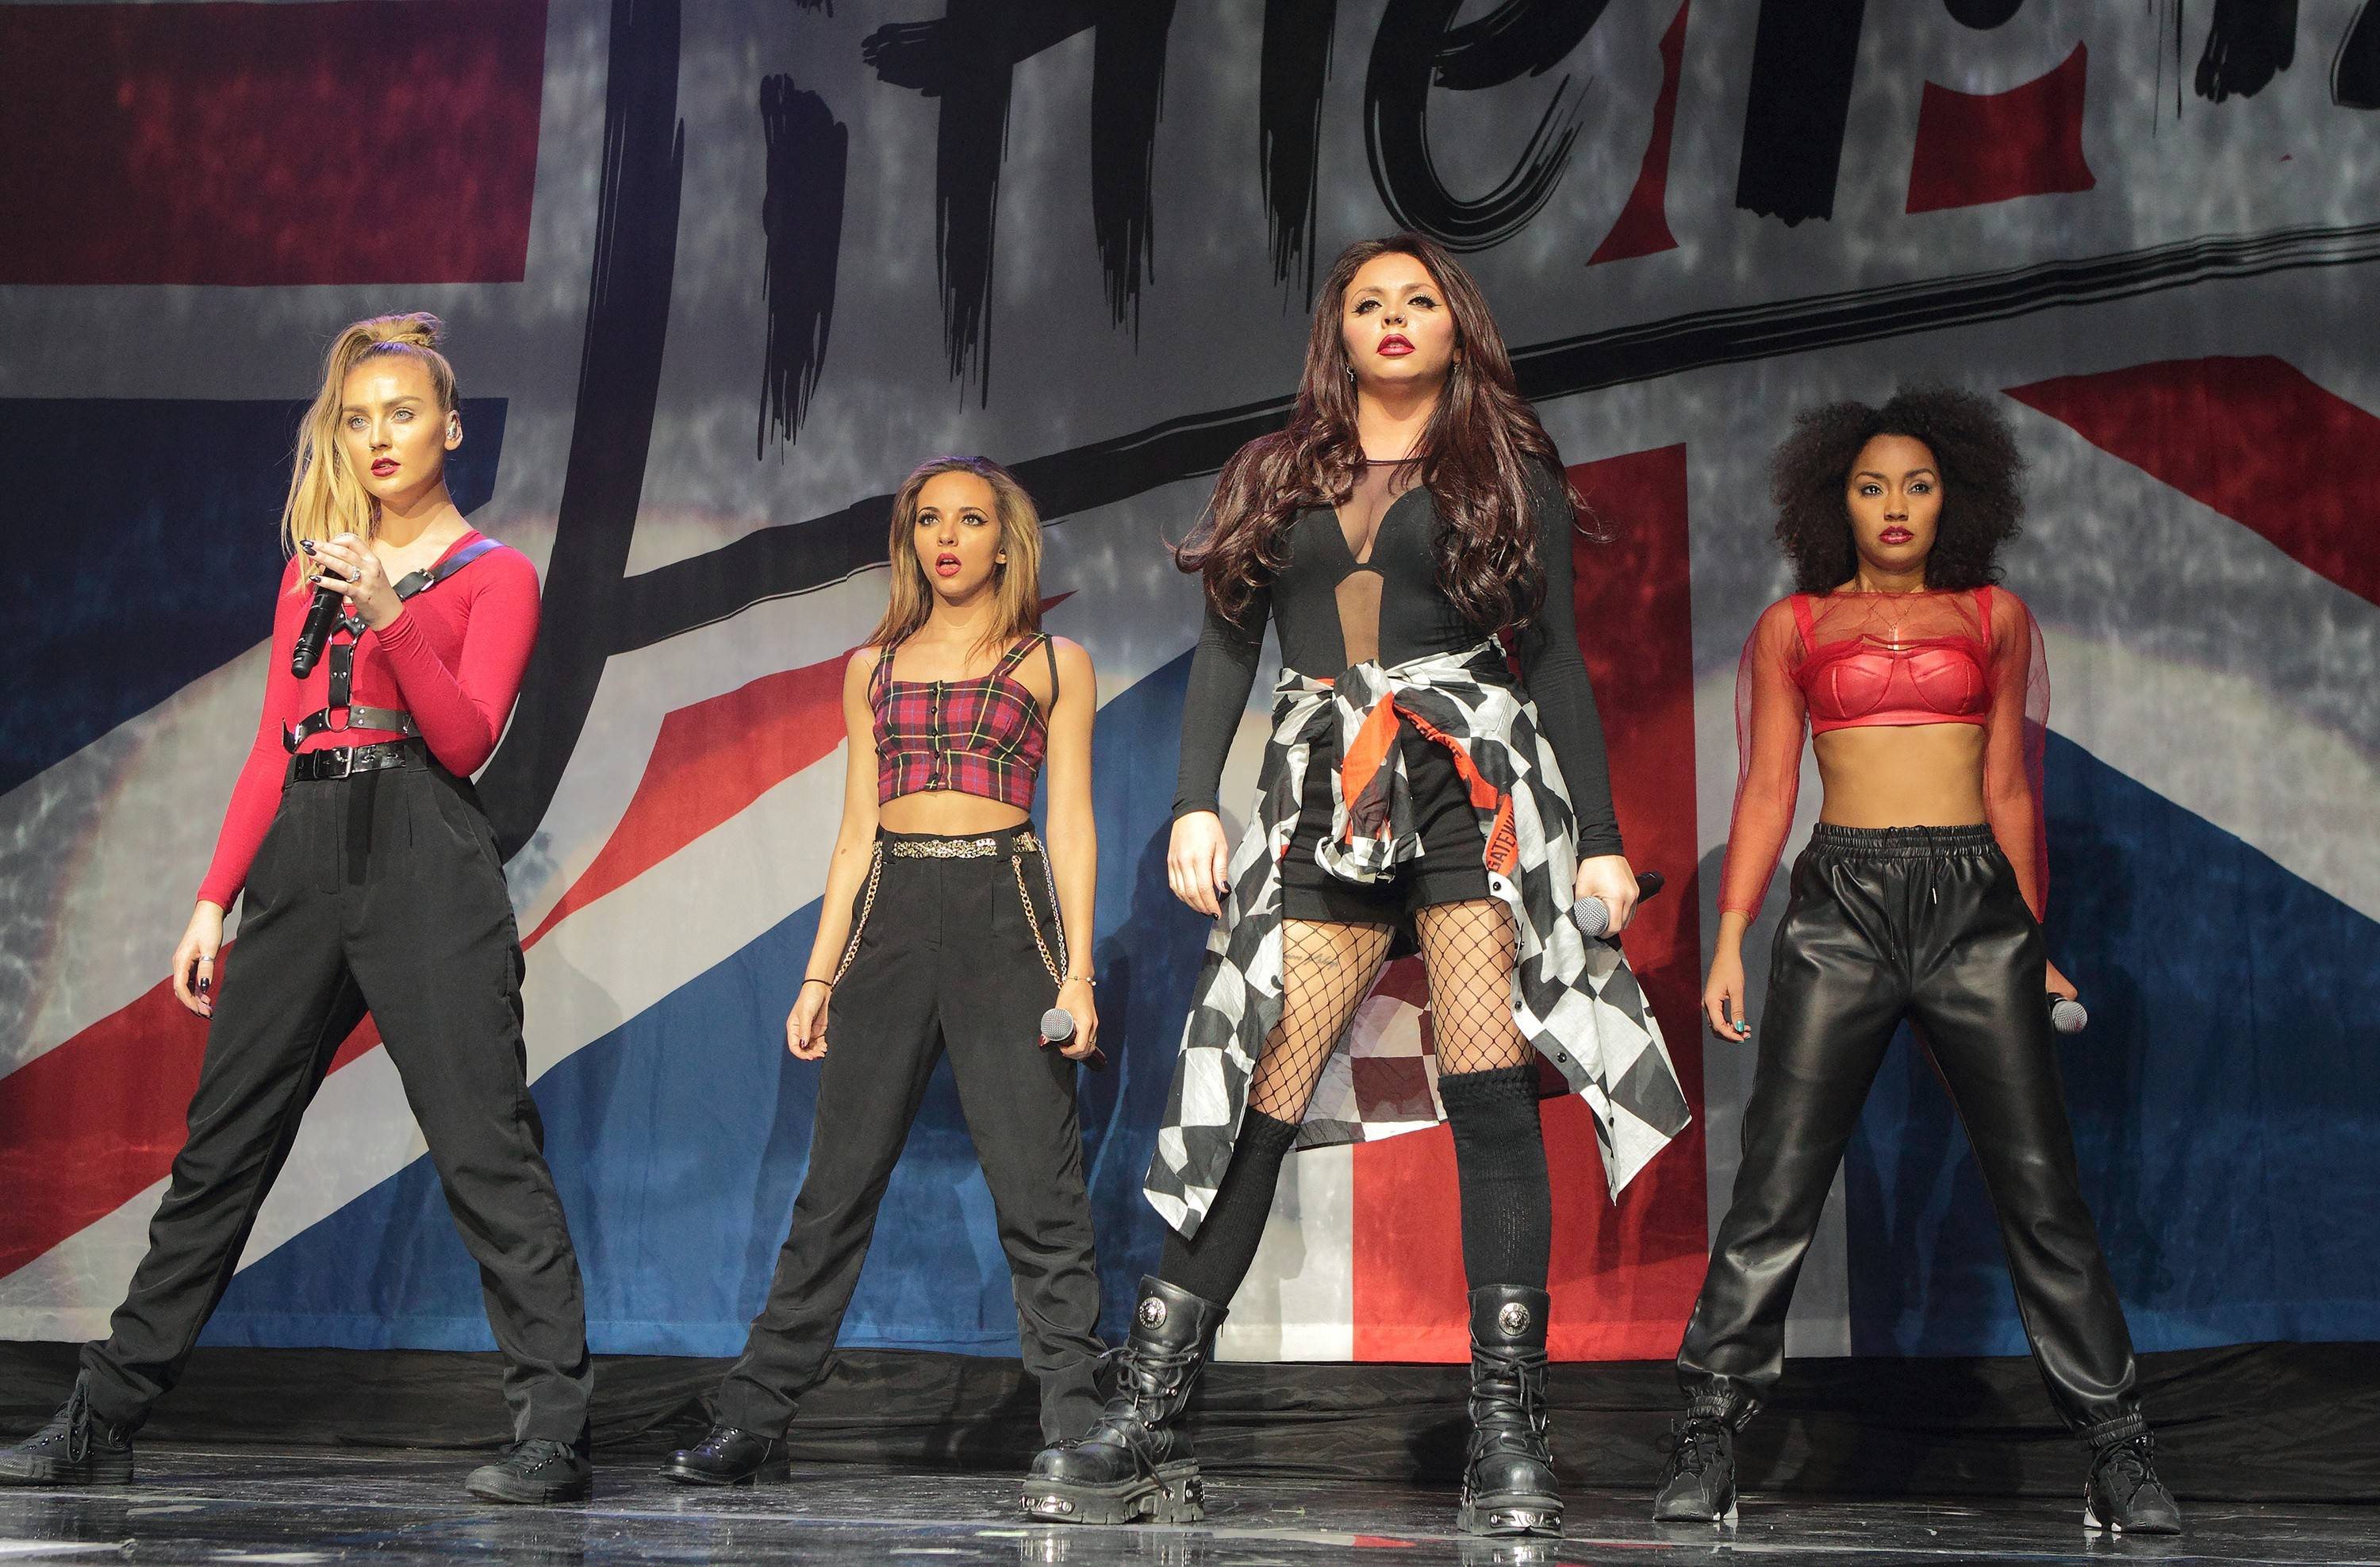 British music group Little Mix's American tour comes to the Rosemont Theatre Sept. 27.